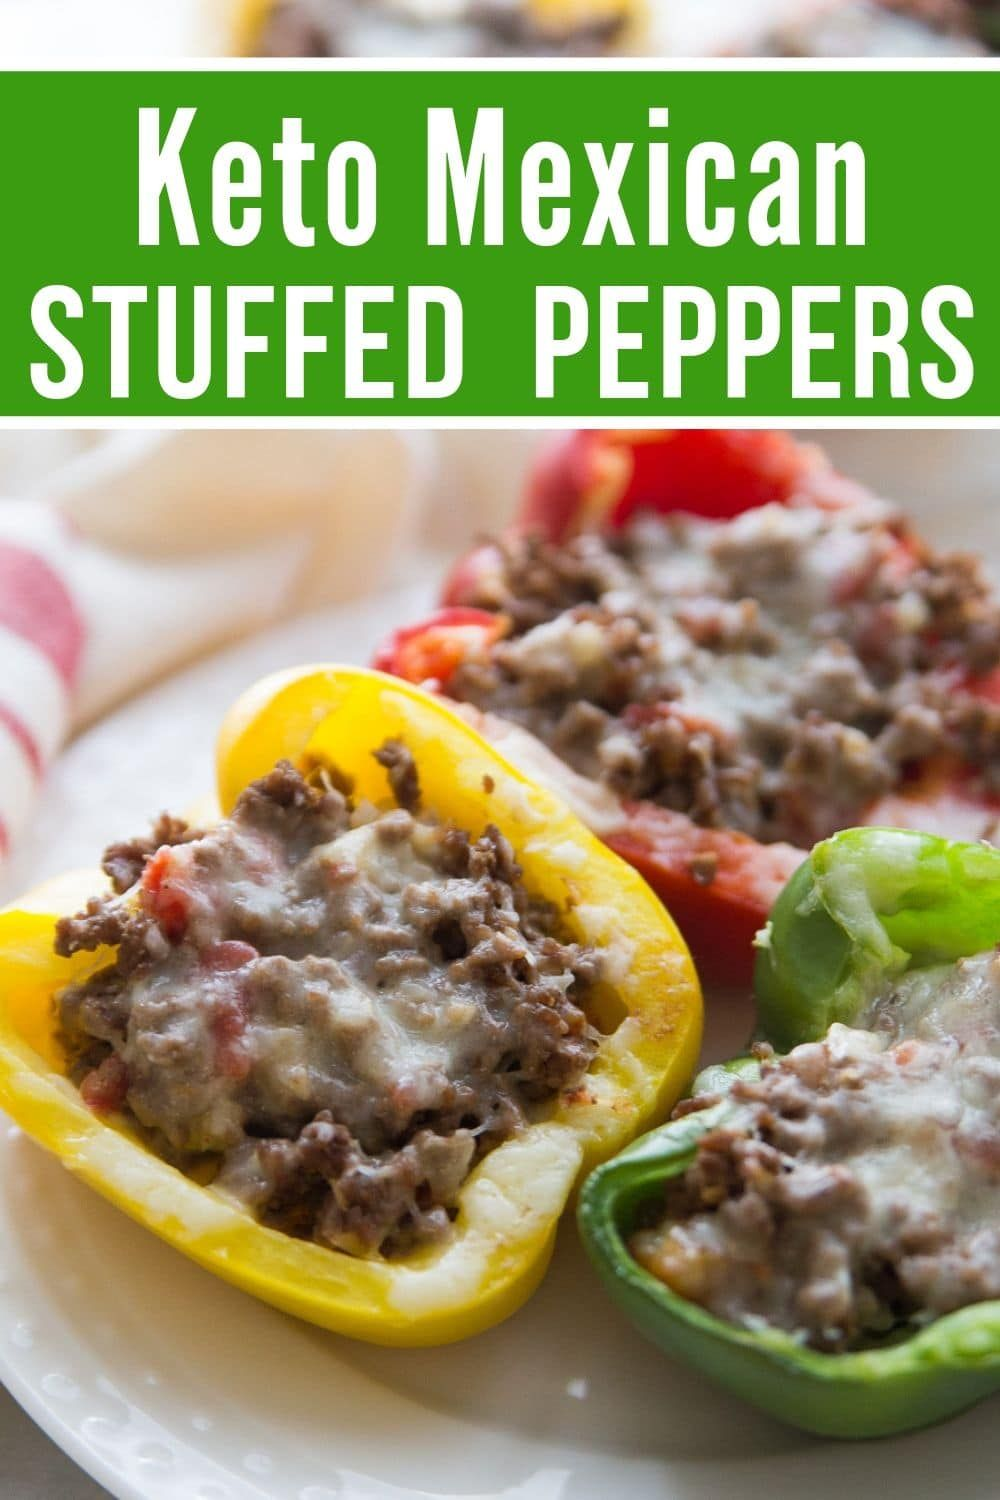 Keto Stuffed Peppers Mexican Style Recipe In 2020 Stuffed Peppers Recipes Mexican Stuffed Peppers